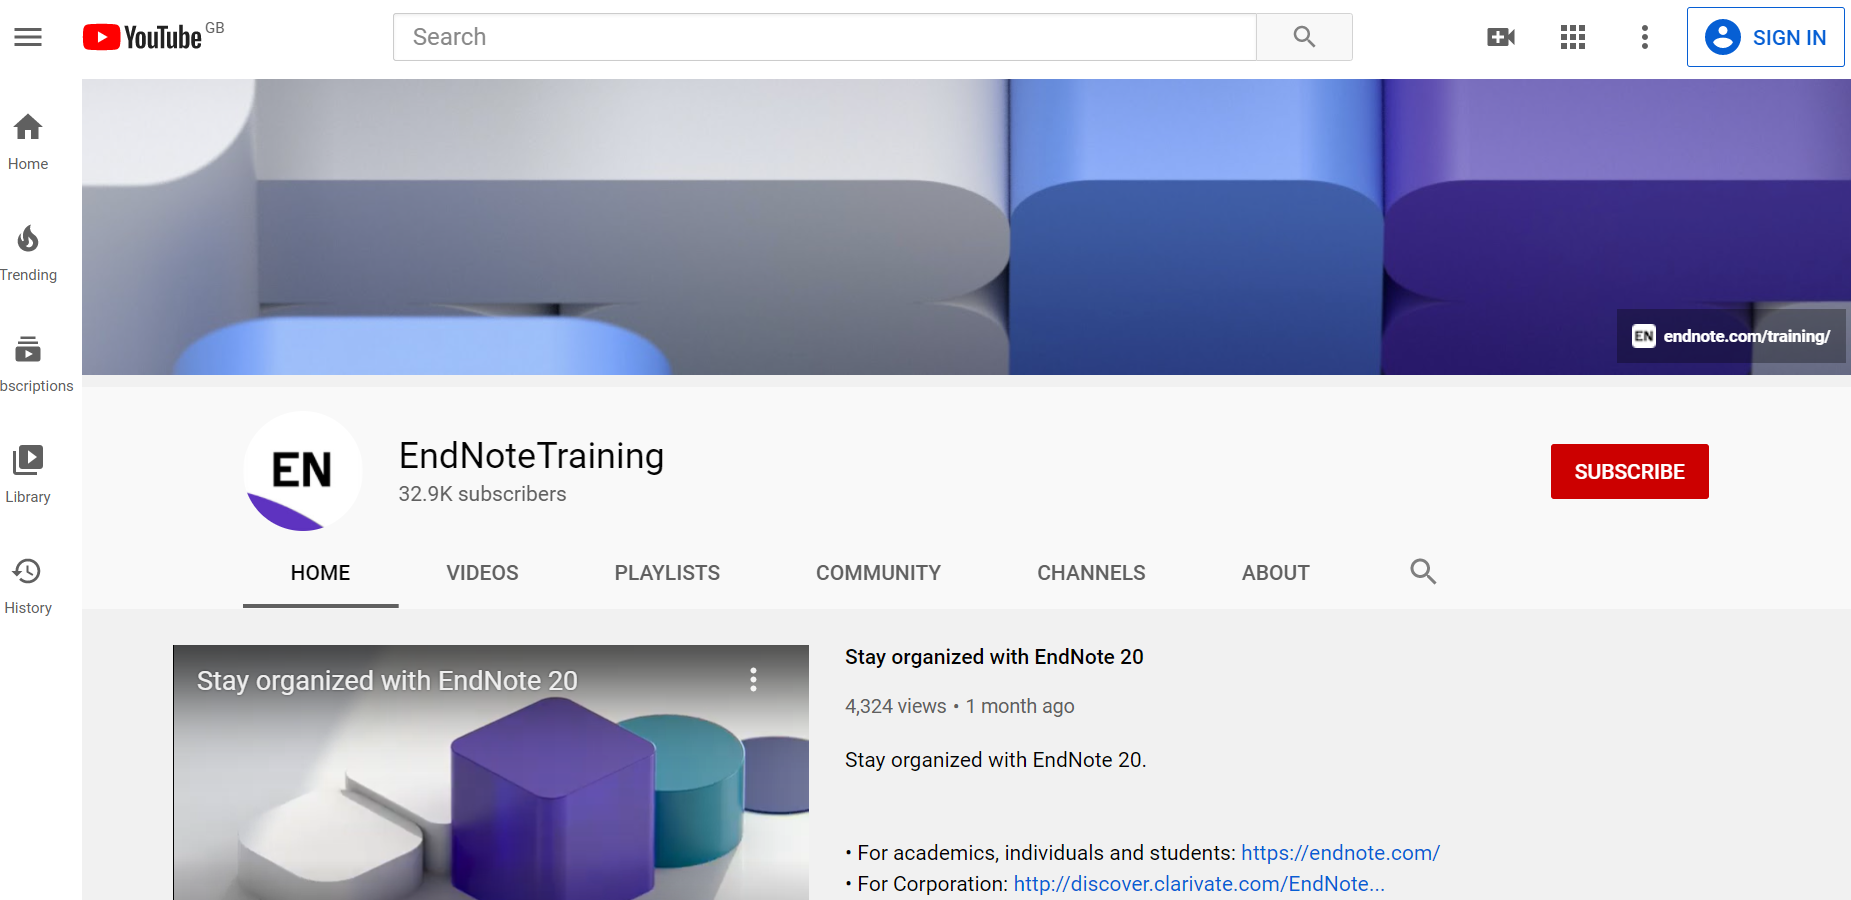 EndNote YouTube channel